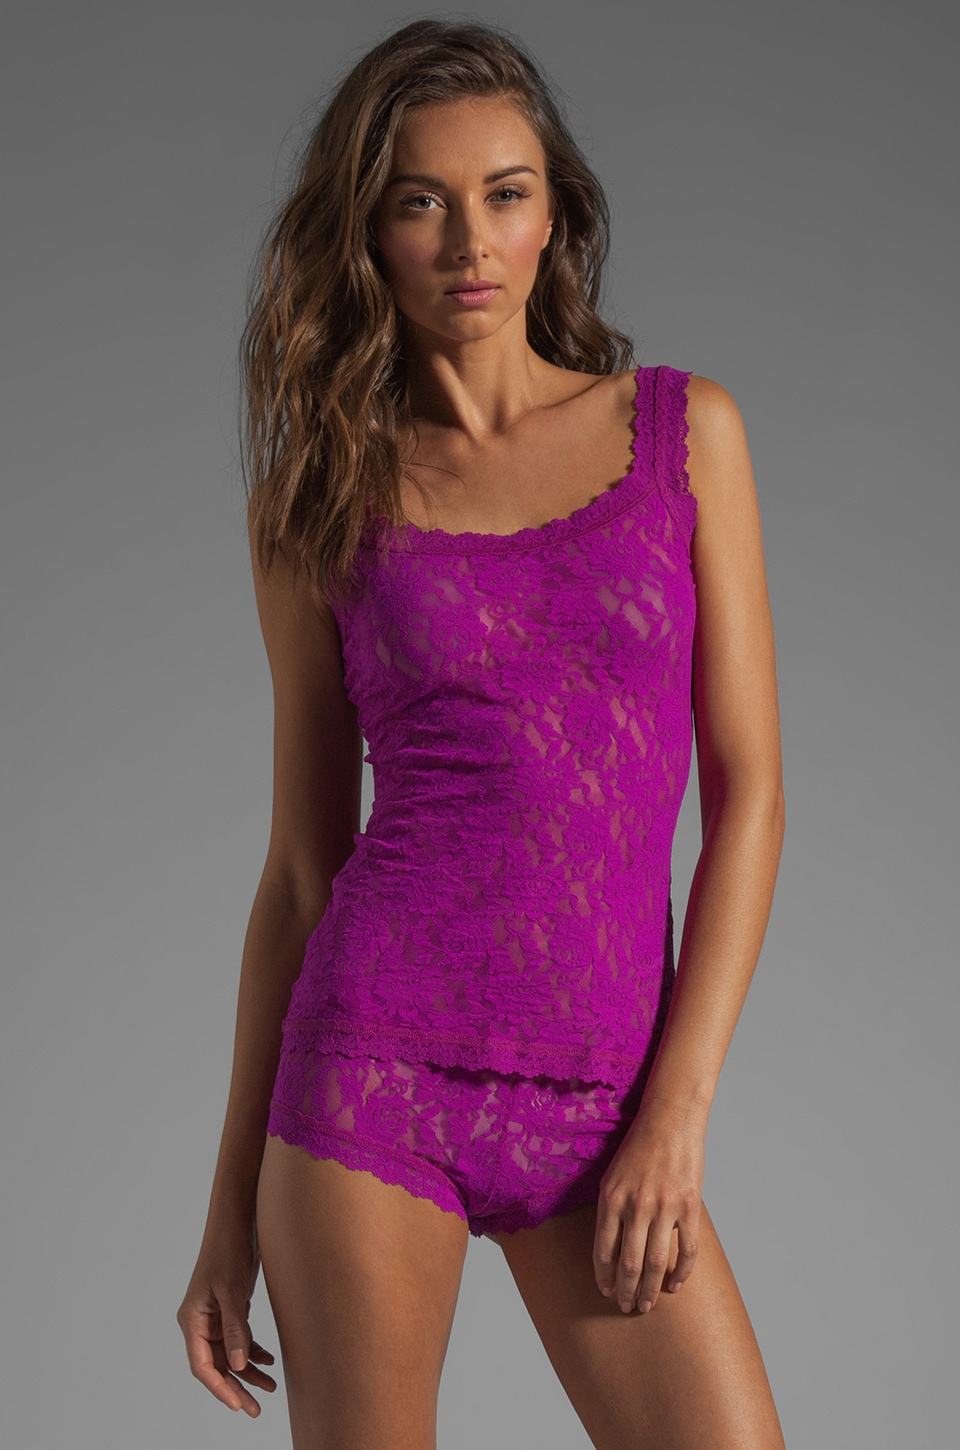 Hanky Panky Classic Unlined Cami in Hot Fuchsia